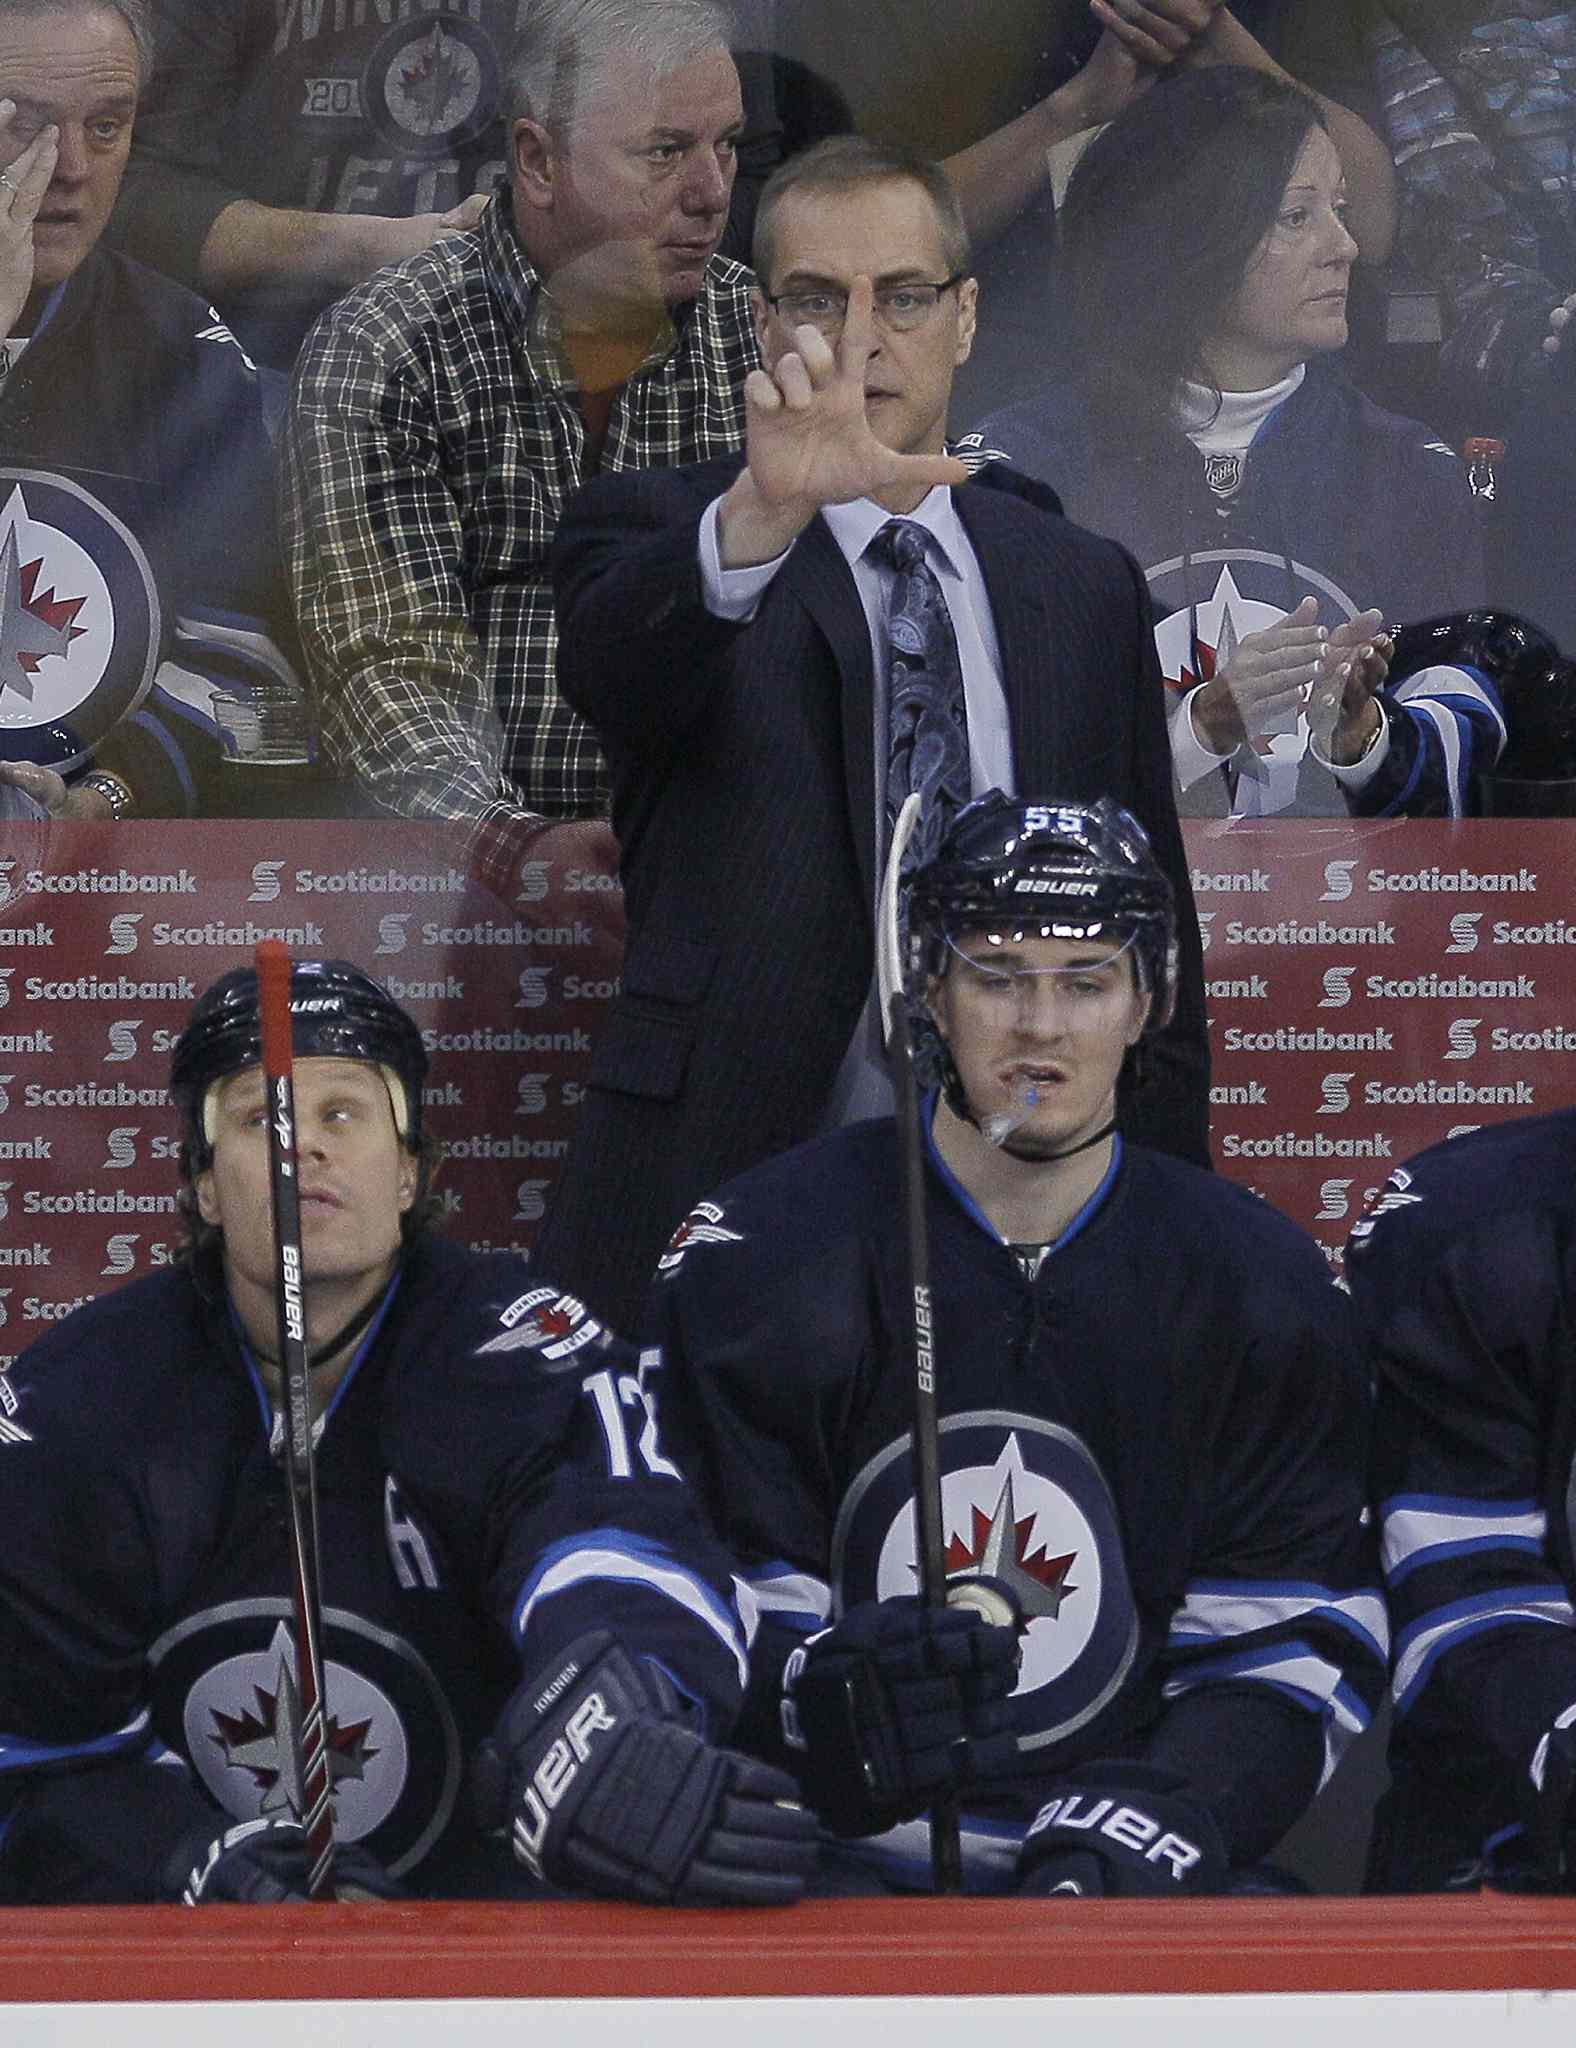 Winnipeg Jets head coach Paul Maurice signals to Michael Frolik (67) in the penalty box during first period NHL action against the Edmonton Oilers in Winnipeg on Saturday, January 18, 2014.